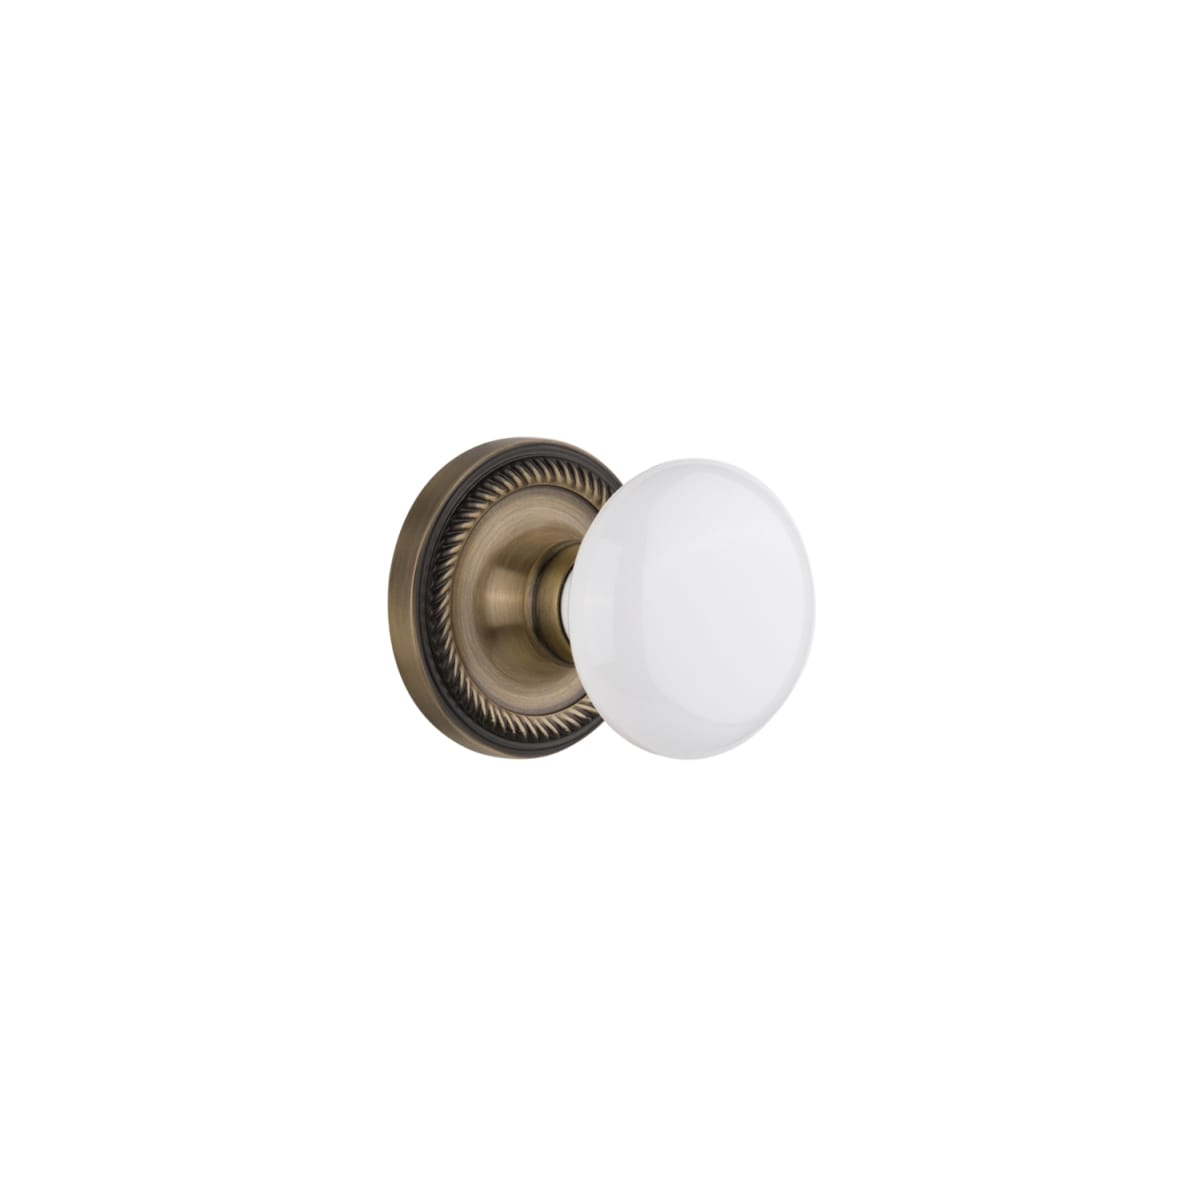 Nostalgic Warehouse 709727 Antique Brass White Porcelain Solid Brass Passage Door Knob Set With Rope Rose And 2 3 4 Backset Faucetdirect Com